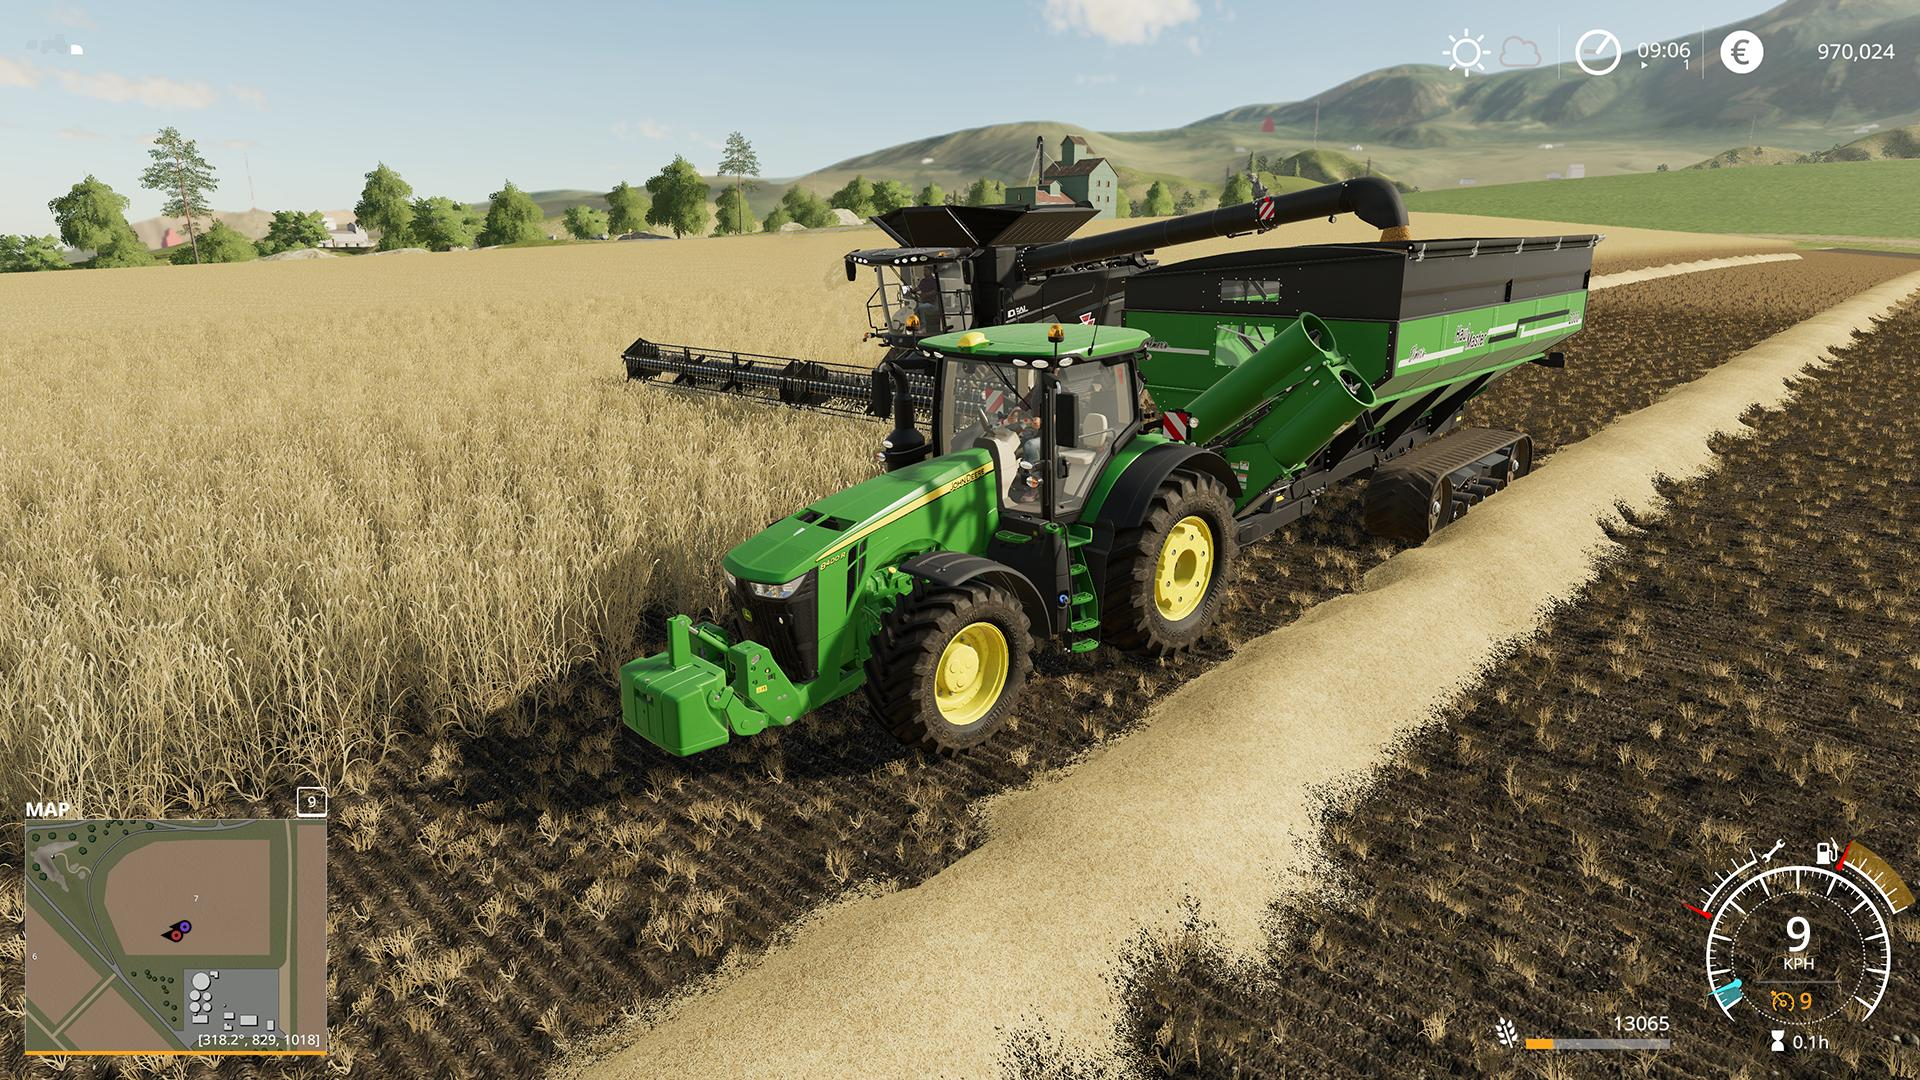 Farming Simulator 2019 announced New Mission System in game!